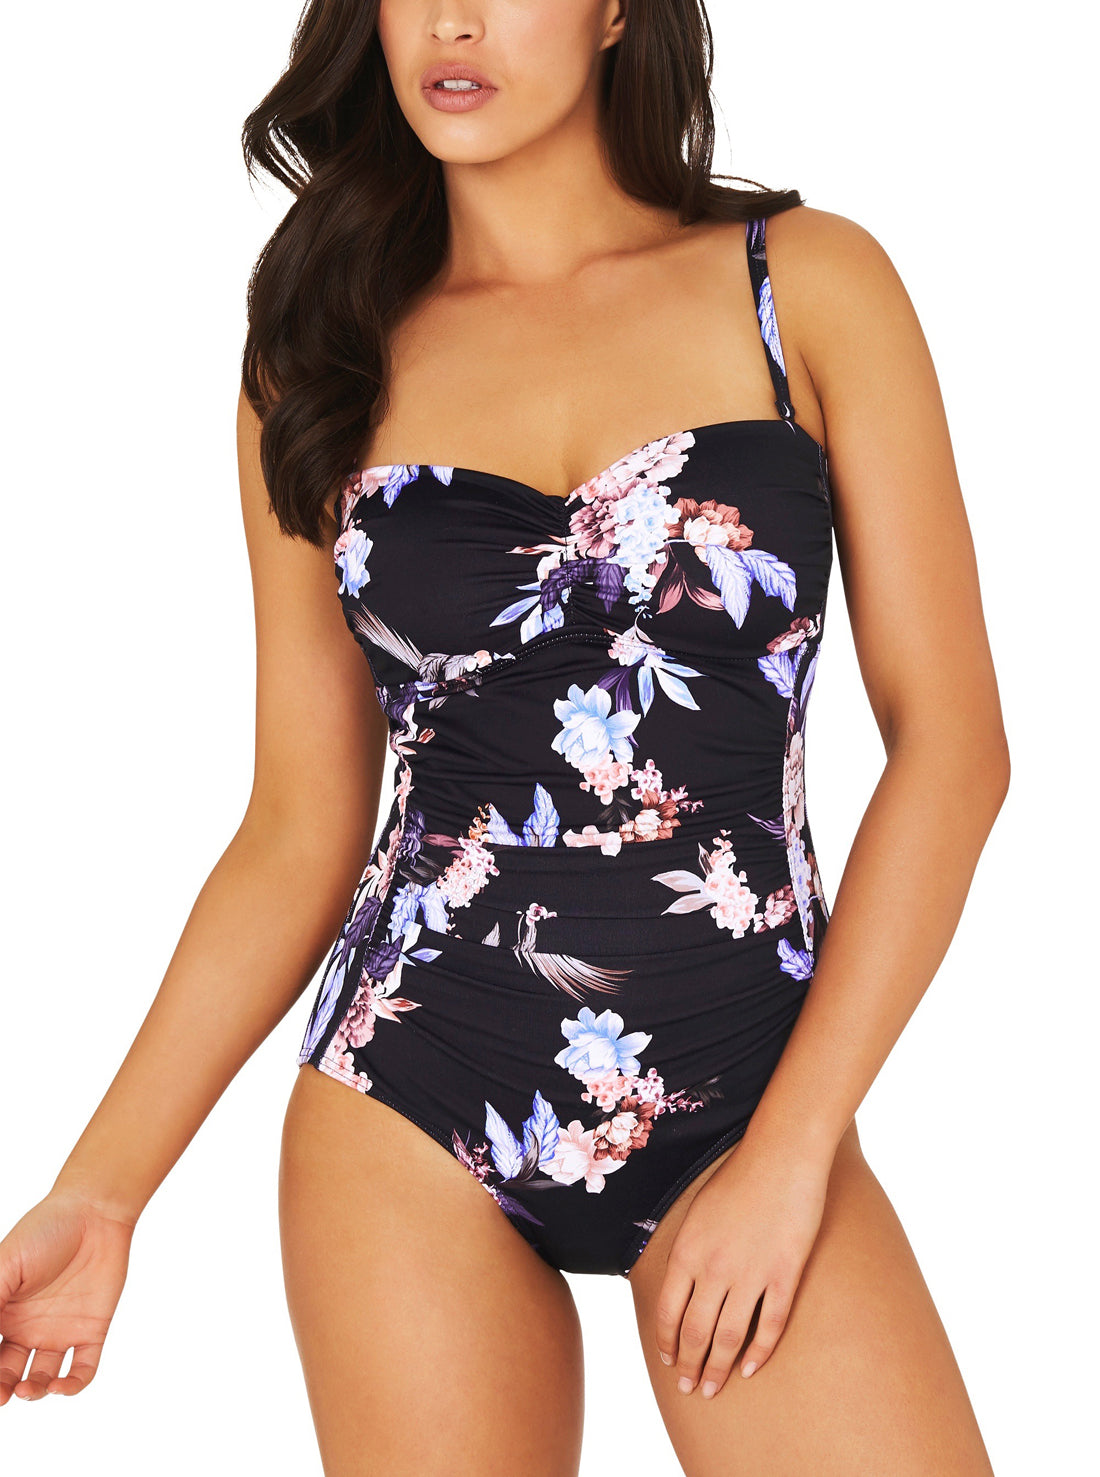 COVENT GARDEN MOULDED C-DD BANDEAU ONE PIECE SWIMSUIT